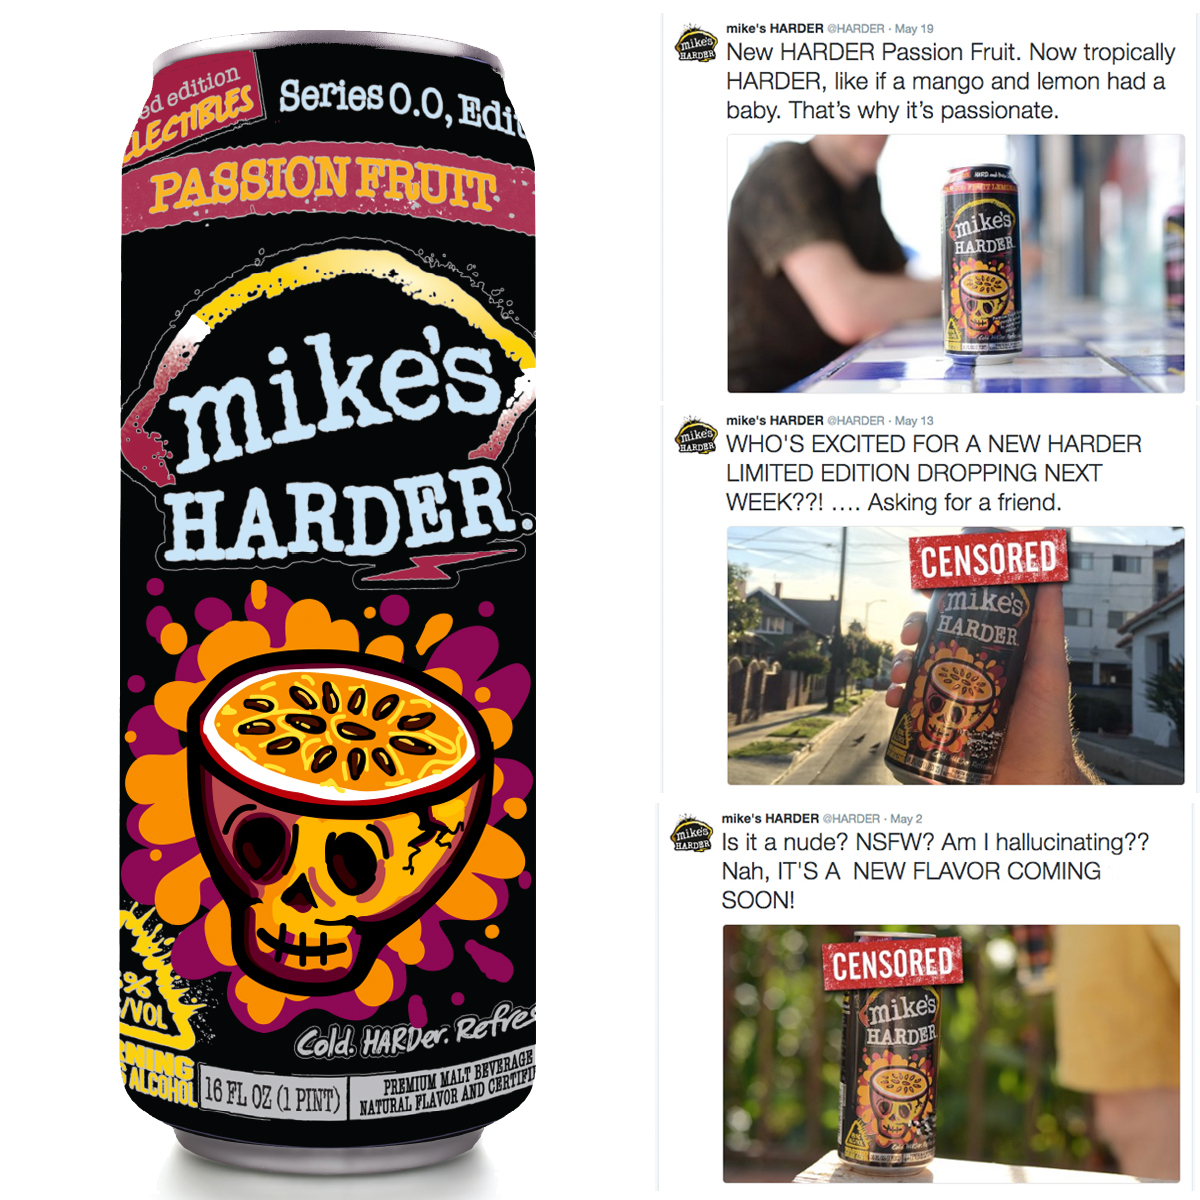 Mock up of the can on the right, the twitter feed from Mike's showing the teaser and launch of the new flavor.